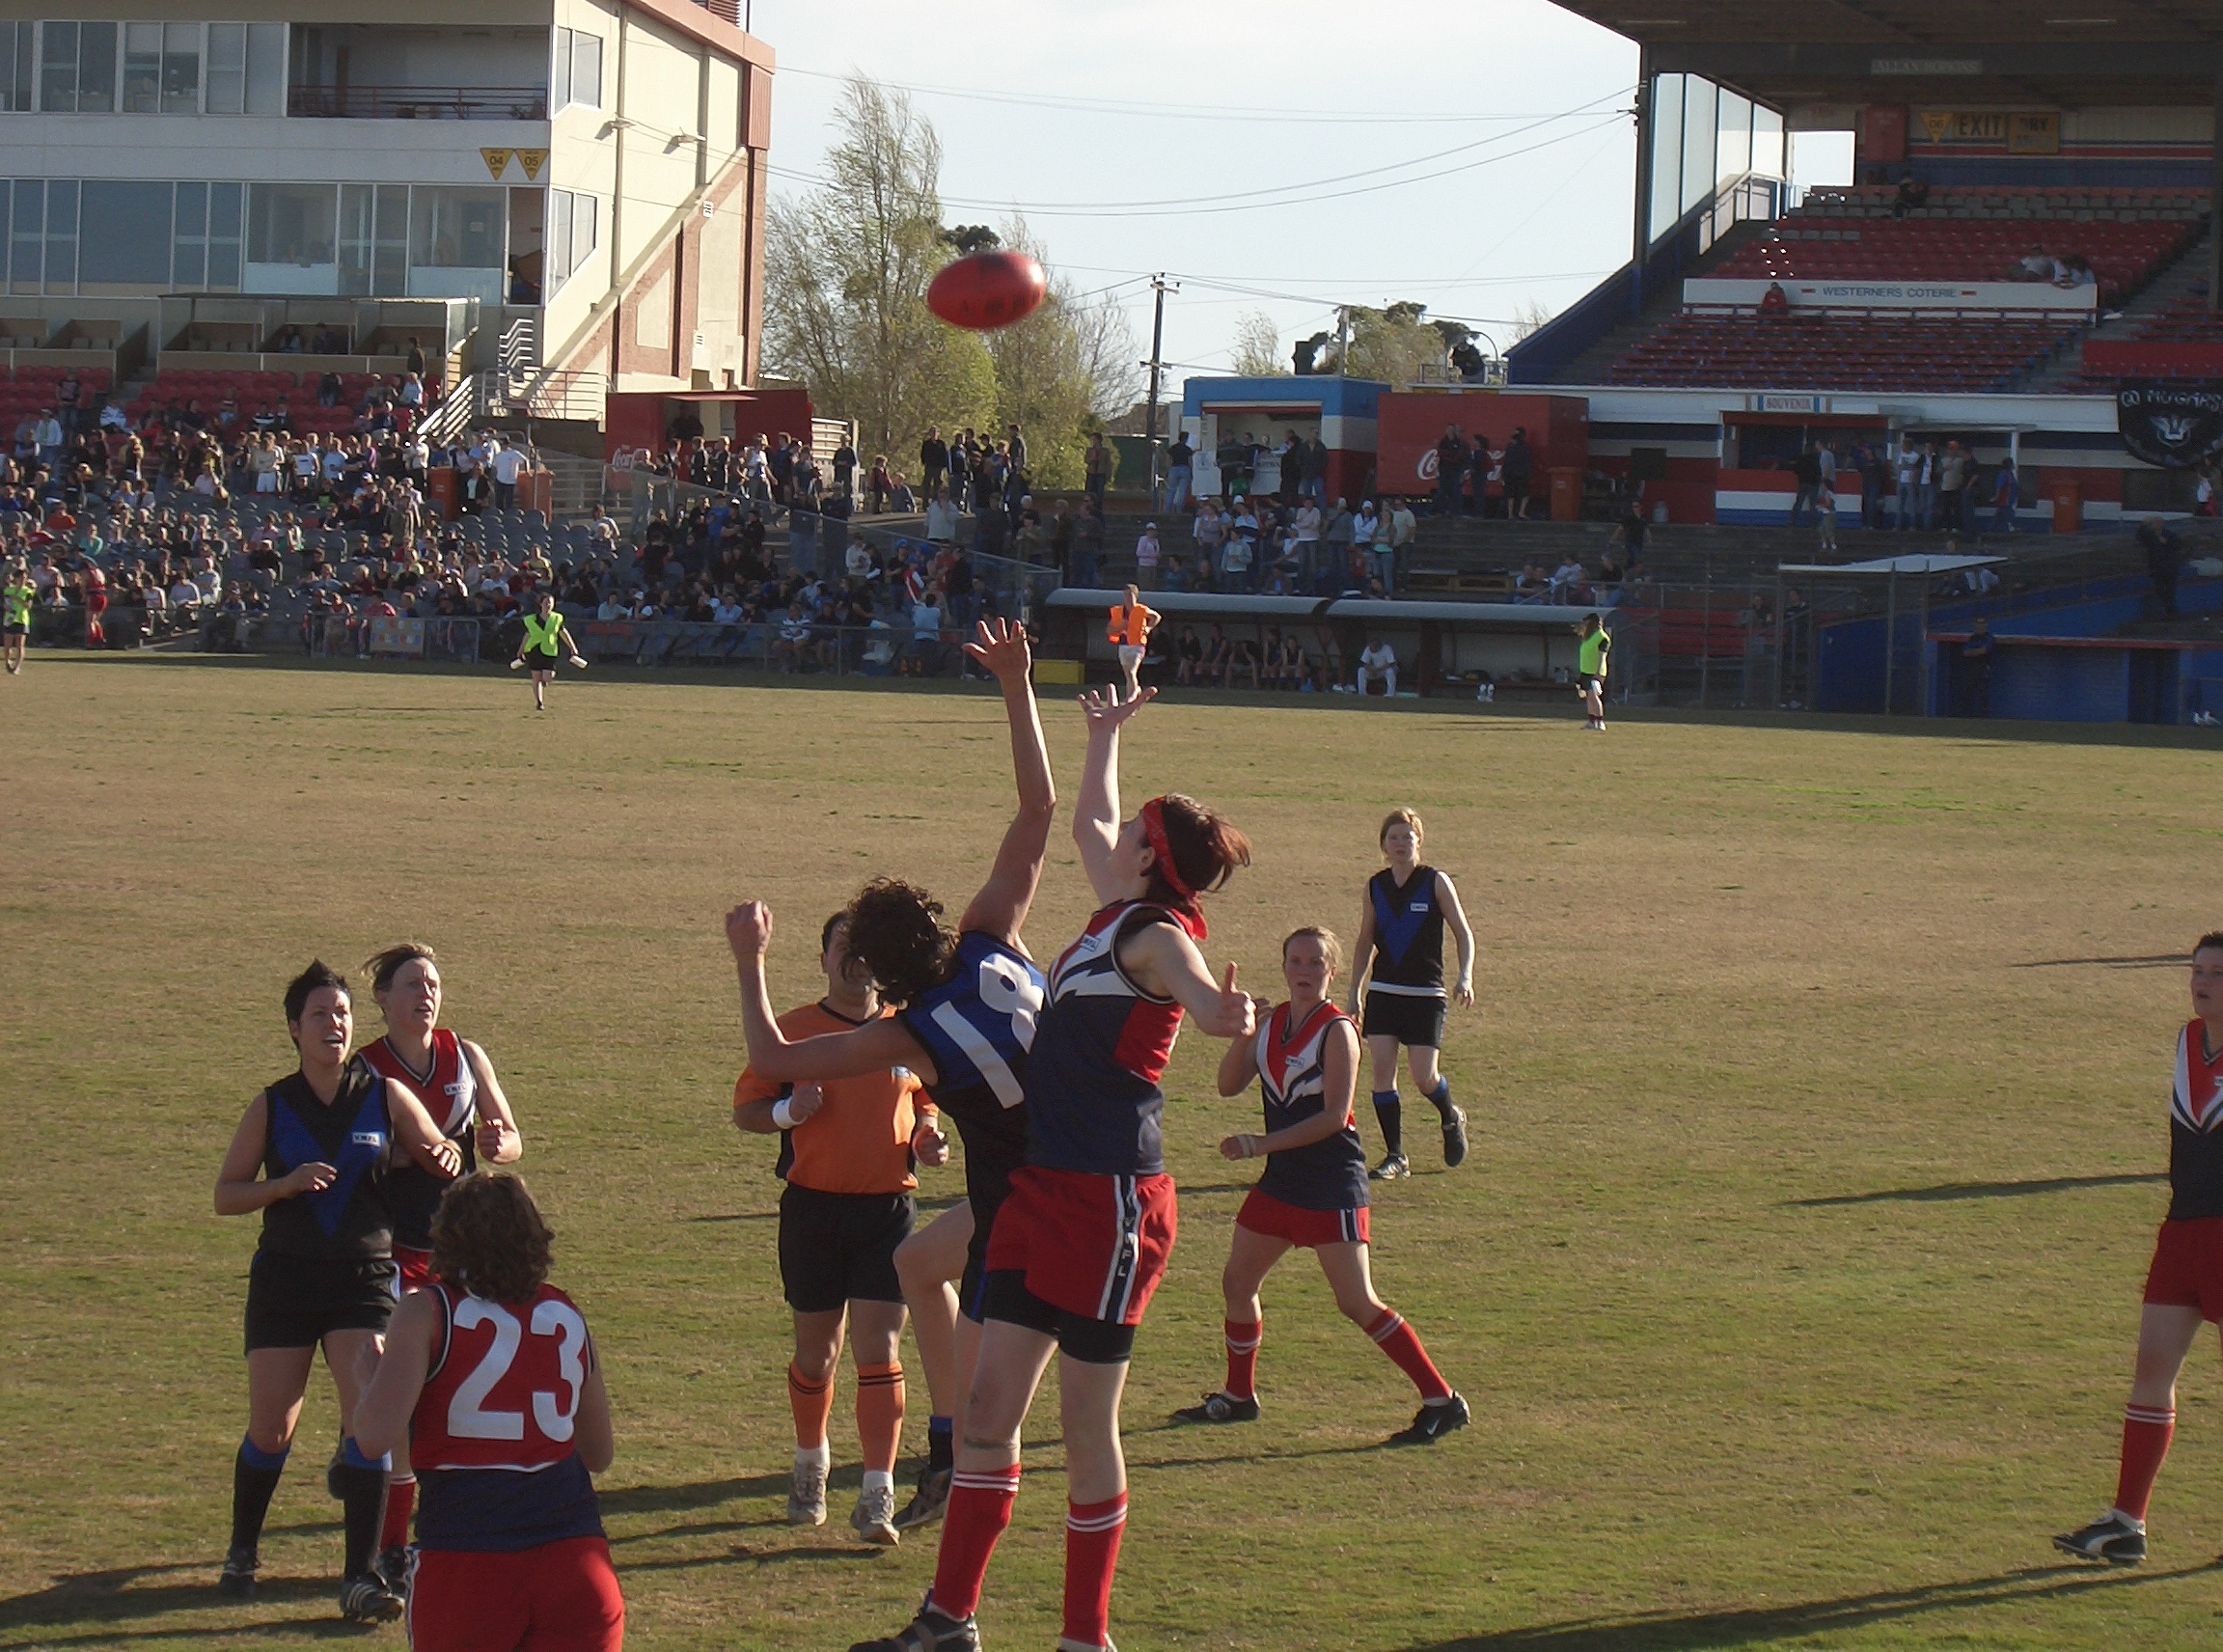 Australian rules football in Western Australia